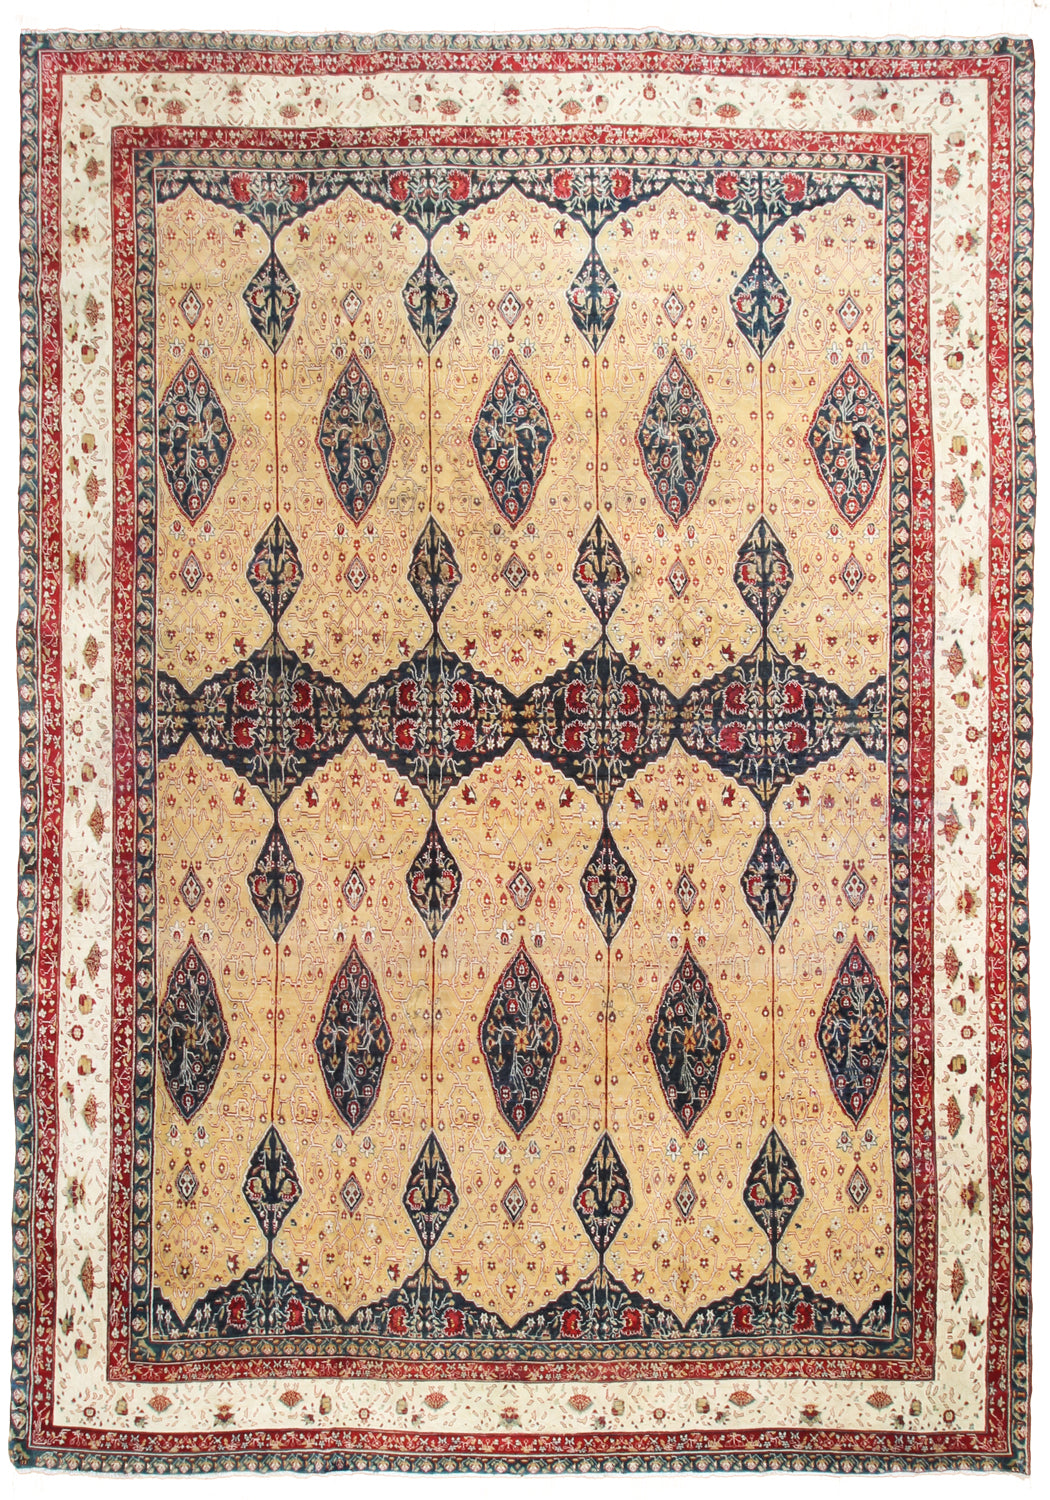 Agra Antique Oversize-Turco Persian Rug Company Inc.